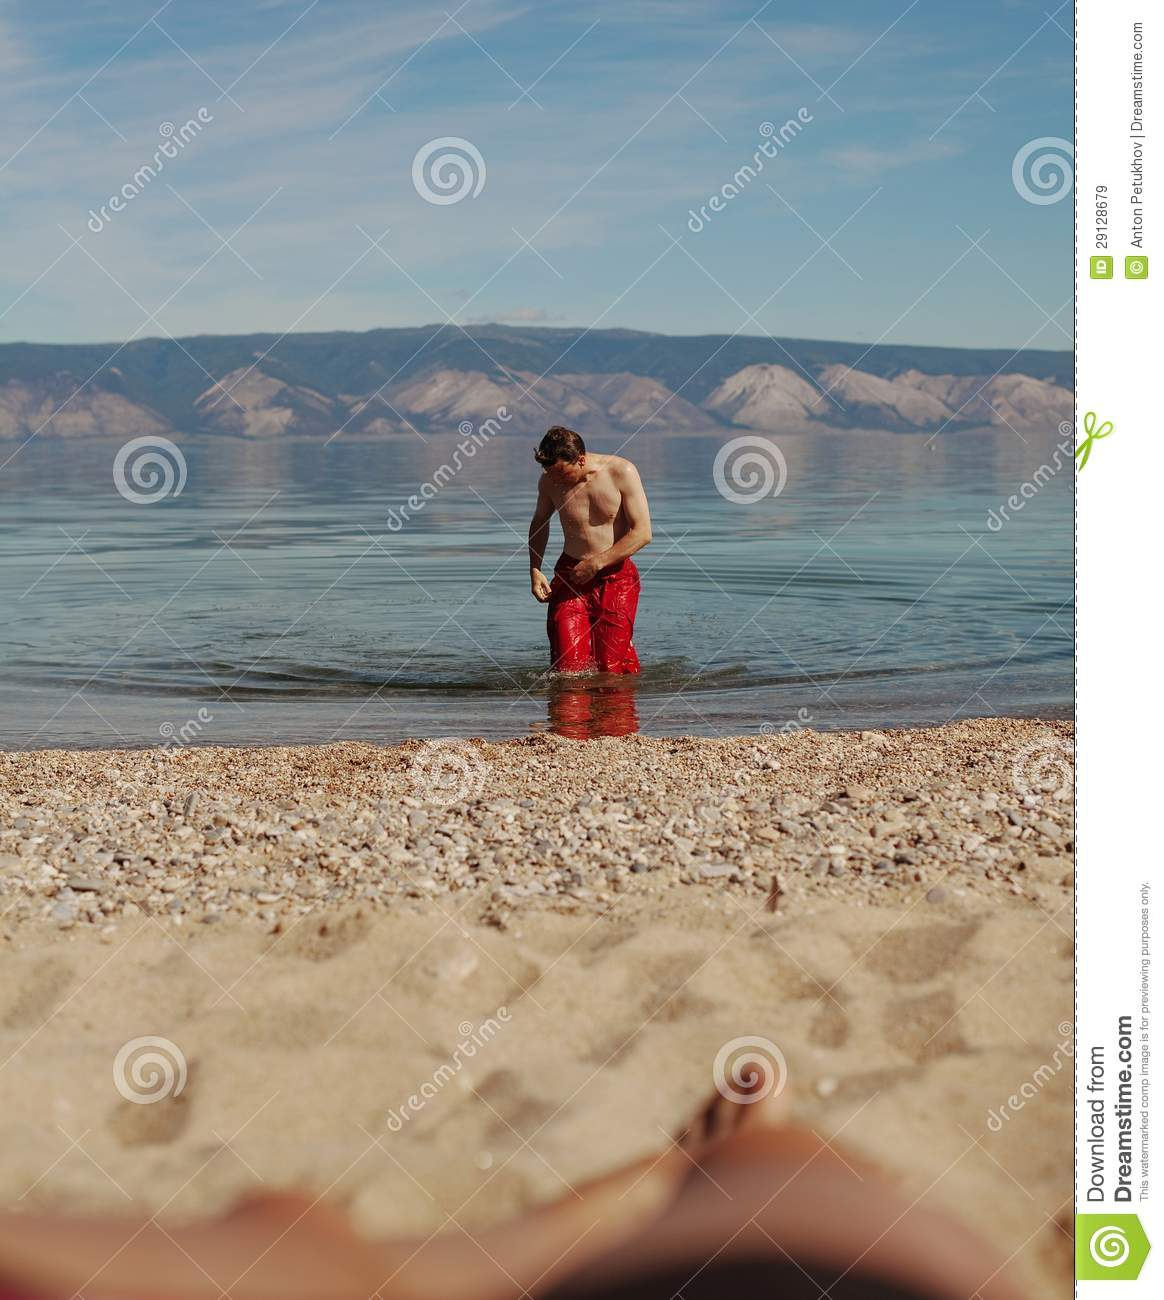 ... Baikal to beach on Olkhon Islands, Russian Federation, summer scene